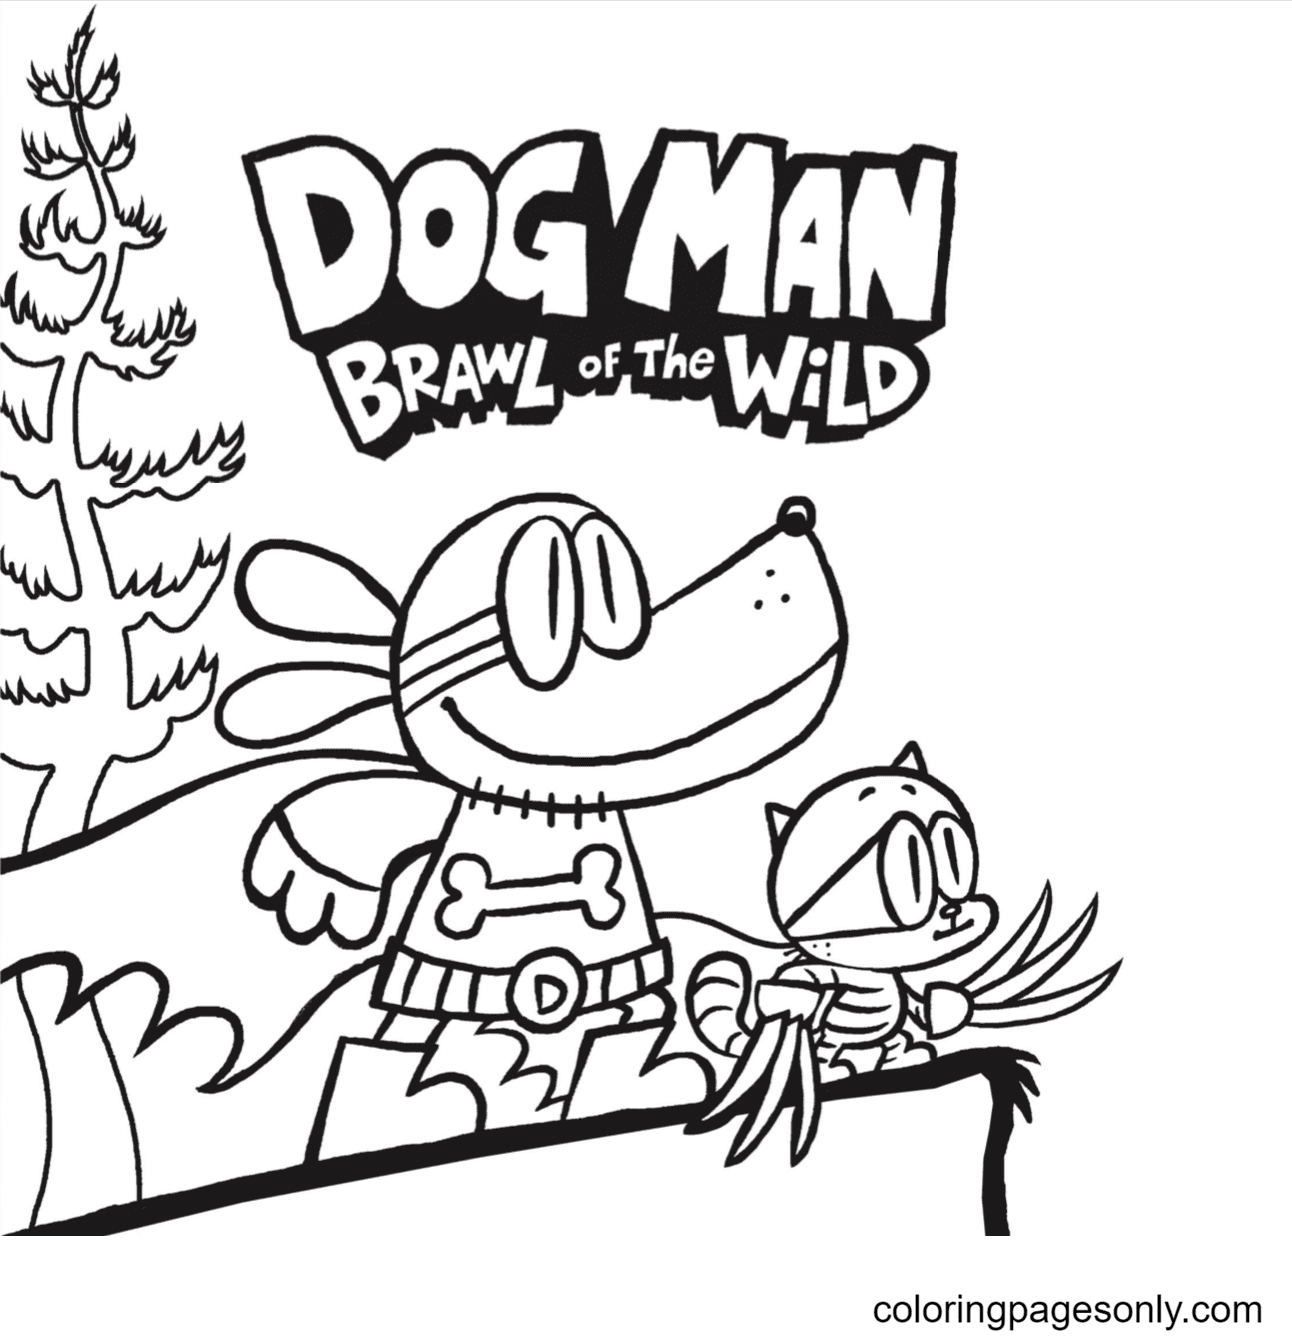 Little Petey Dog Man and Cat Kid Coloring Page